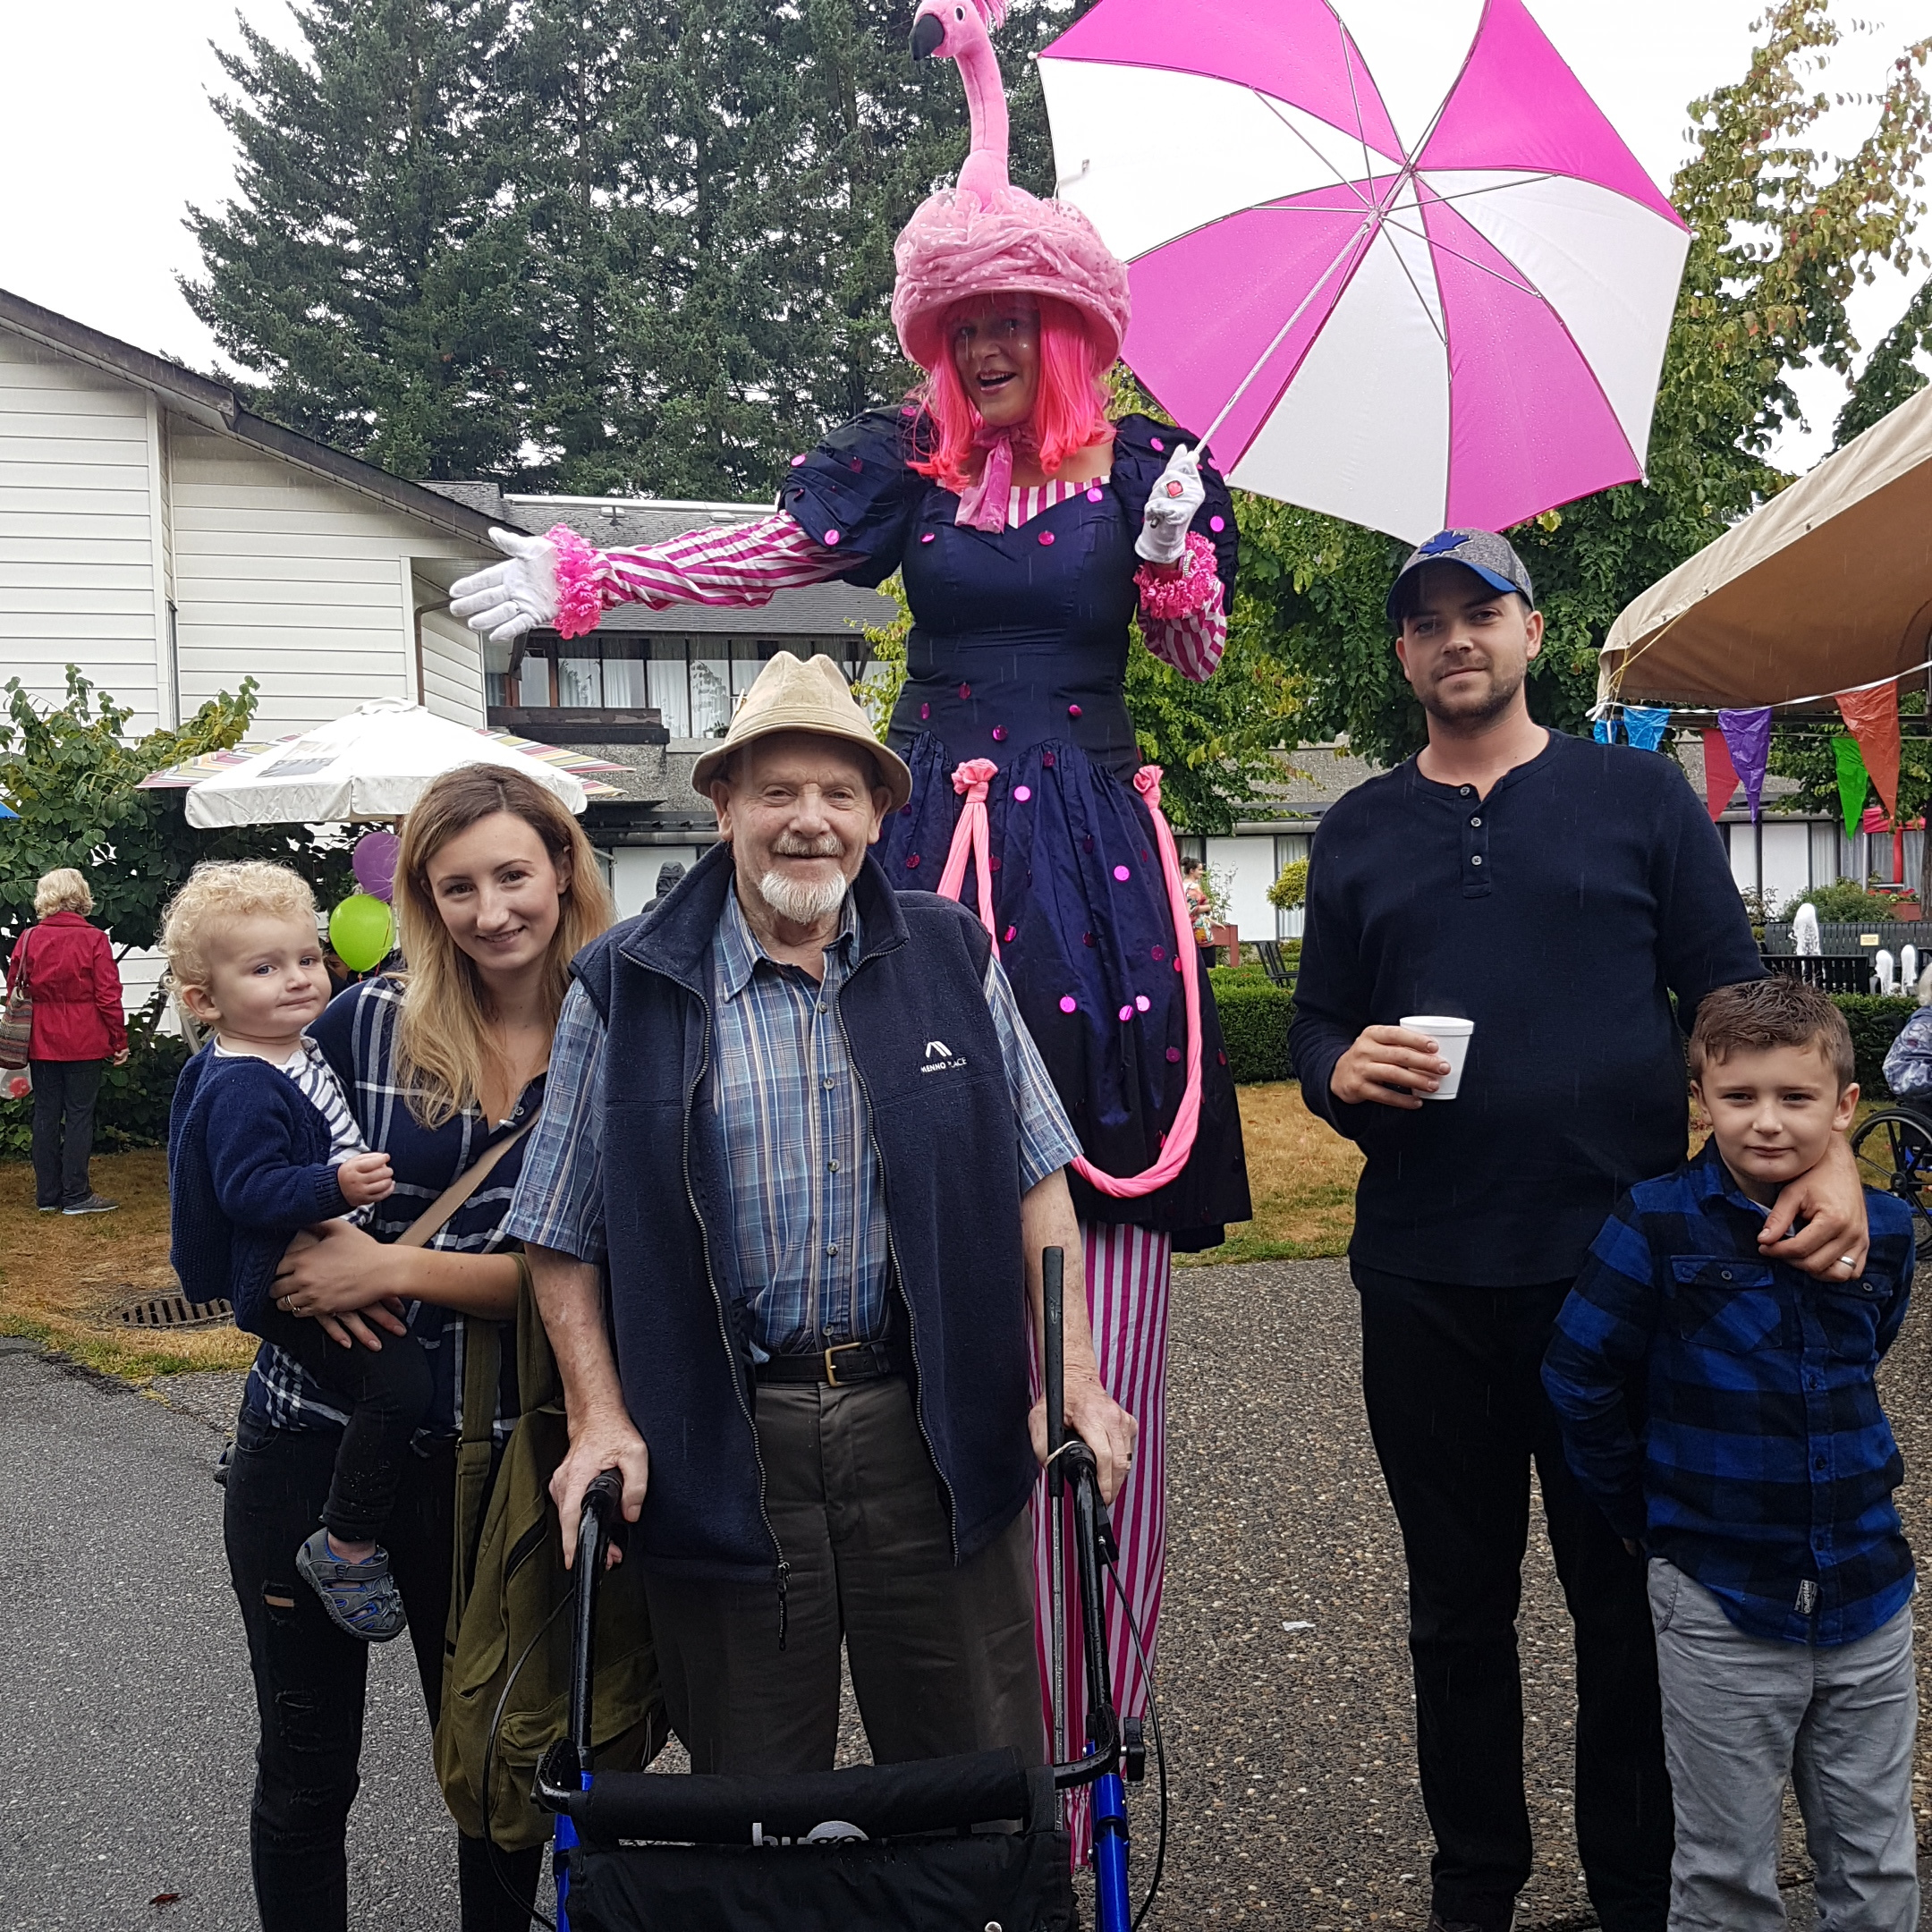 From the left – Dylan and his son, then the lady on stilts, next the one with the hat, me, and next to me the wife of Dylan, Natasha, with their youngest son on her arm. Their youngest son has curly blond hair, the kind my baldness should greatly improve with, however...